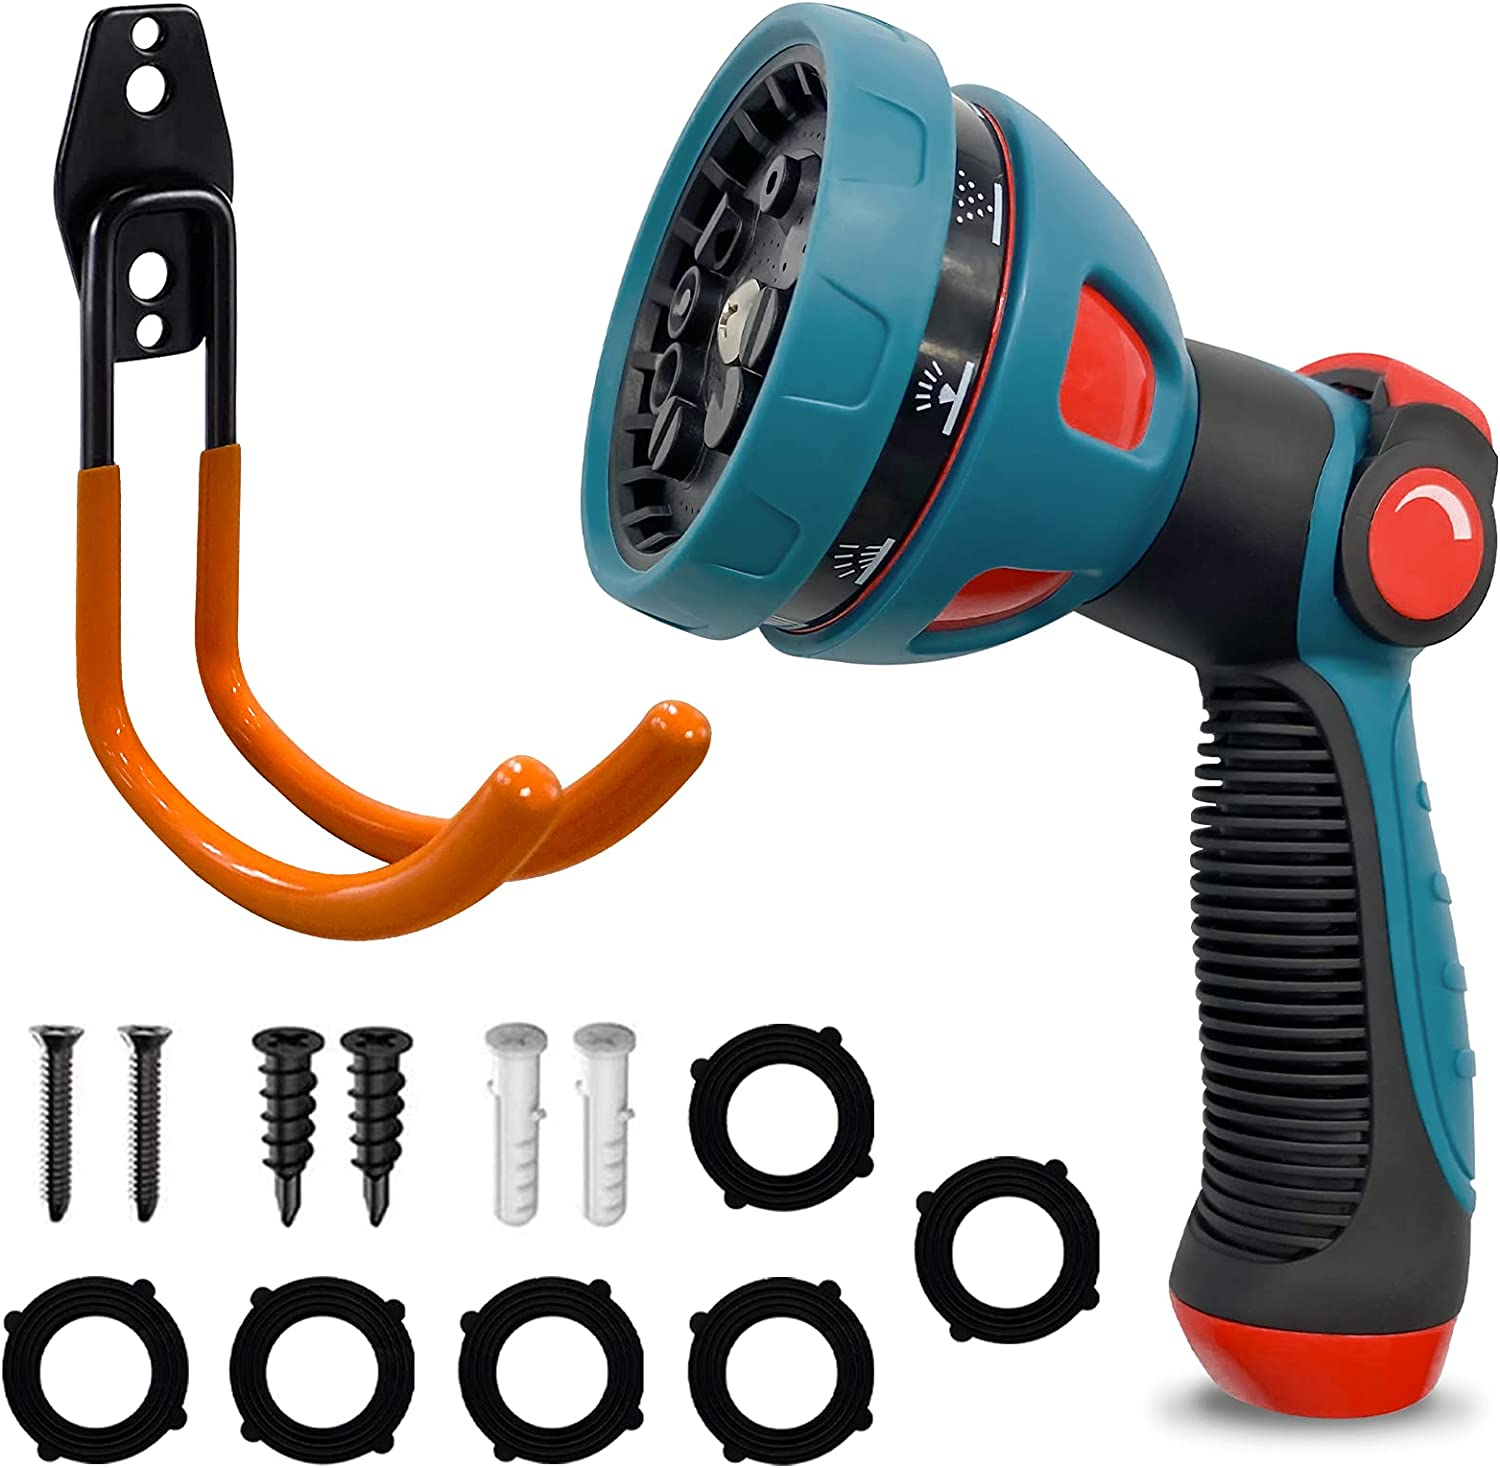 Garden Hose Nozzle,Hose Sprayer,Water Hose Nozzle for Lawns,Garden,Home,Pet,Car w/a Heavy Duty Hose Hook-Features 10 Spray Patterns Thumb Control,On Off Valve for Easy Water Control